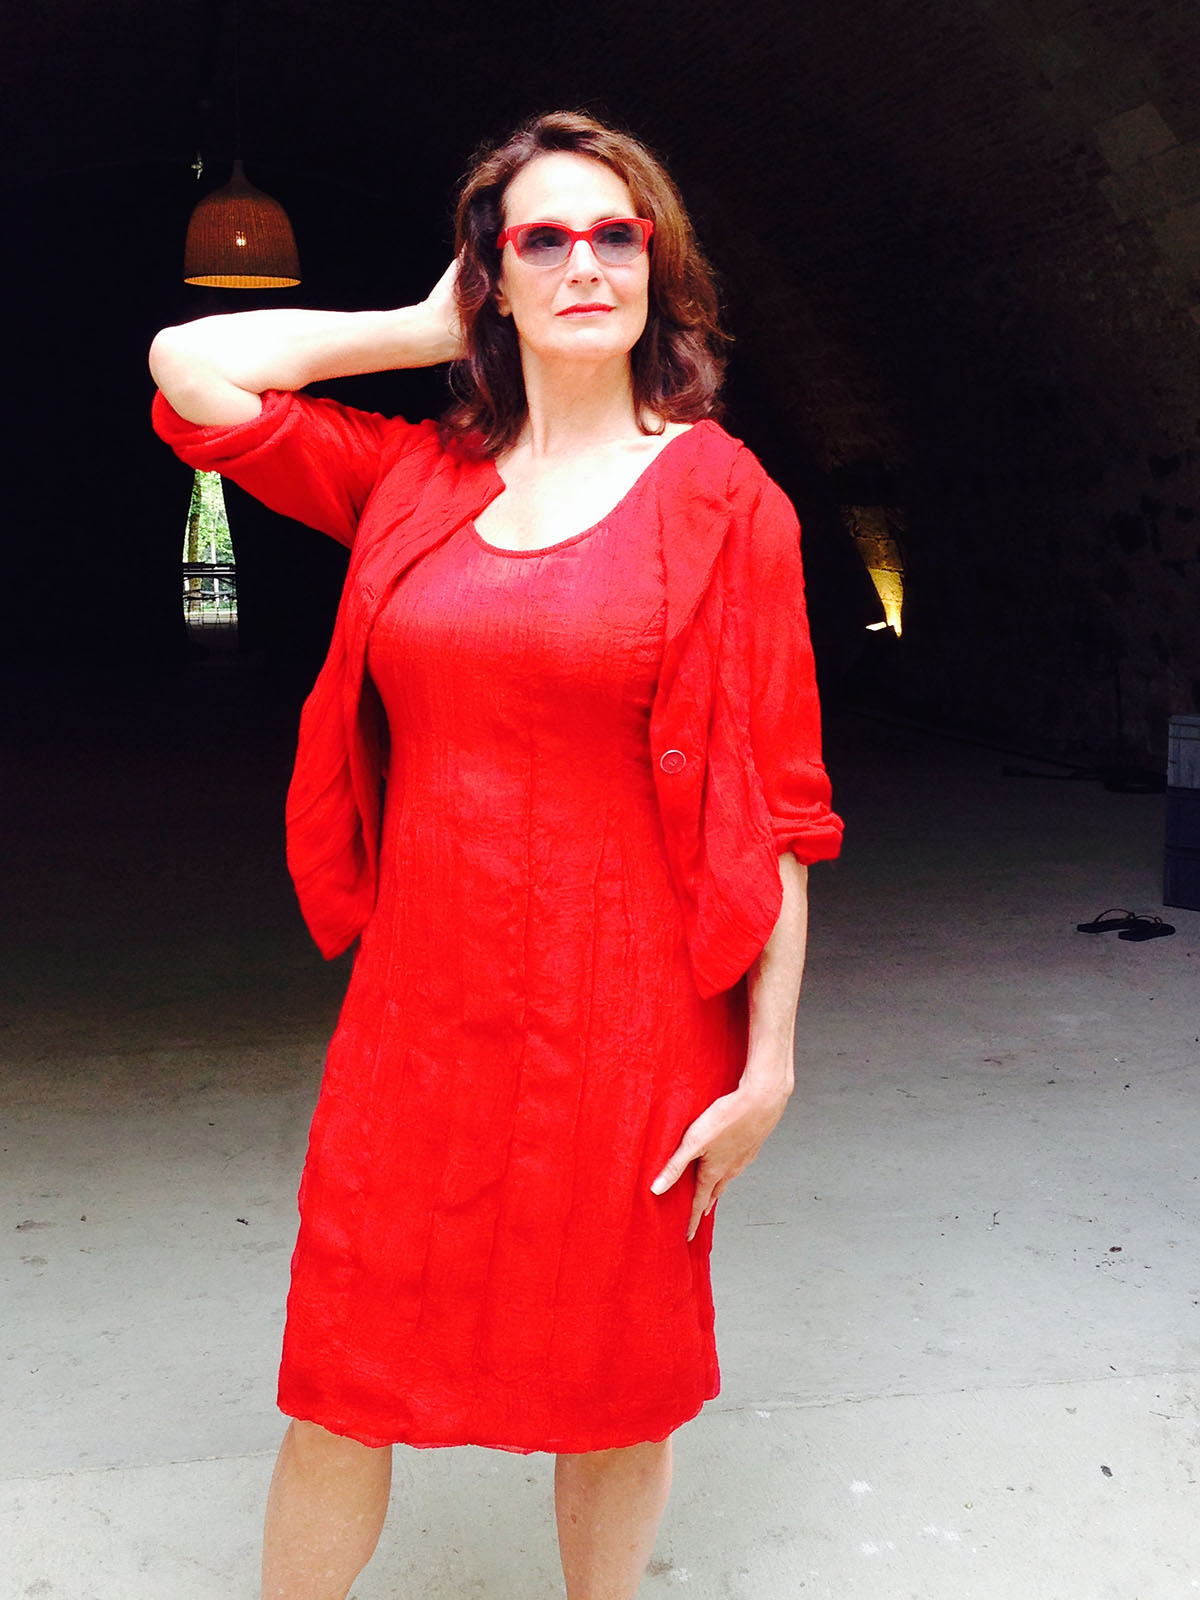 Photo of Dawn Young in red dress